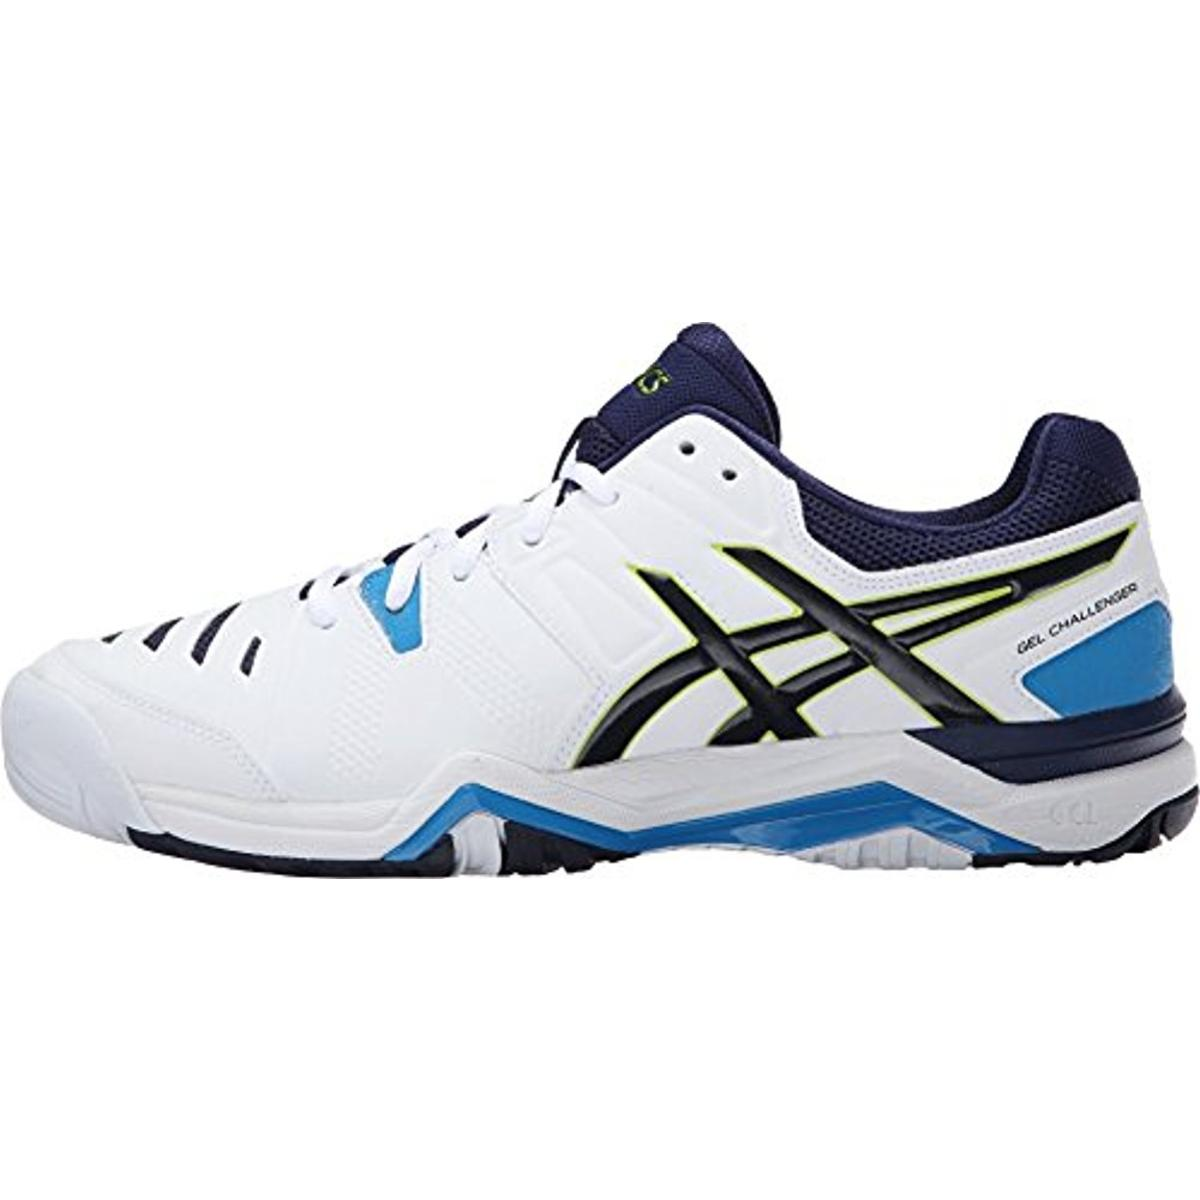 Asics Mens Gel-Challenger 10 Textured Rubber Sole Tennis Shoes